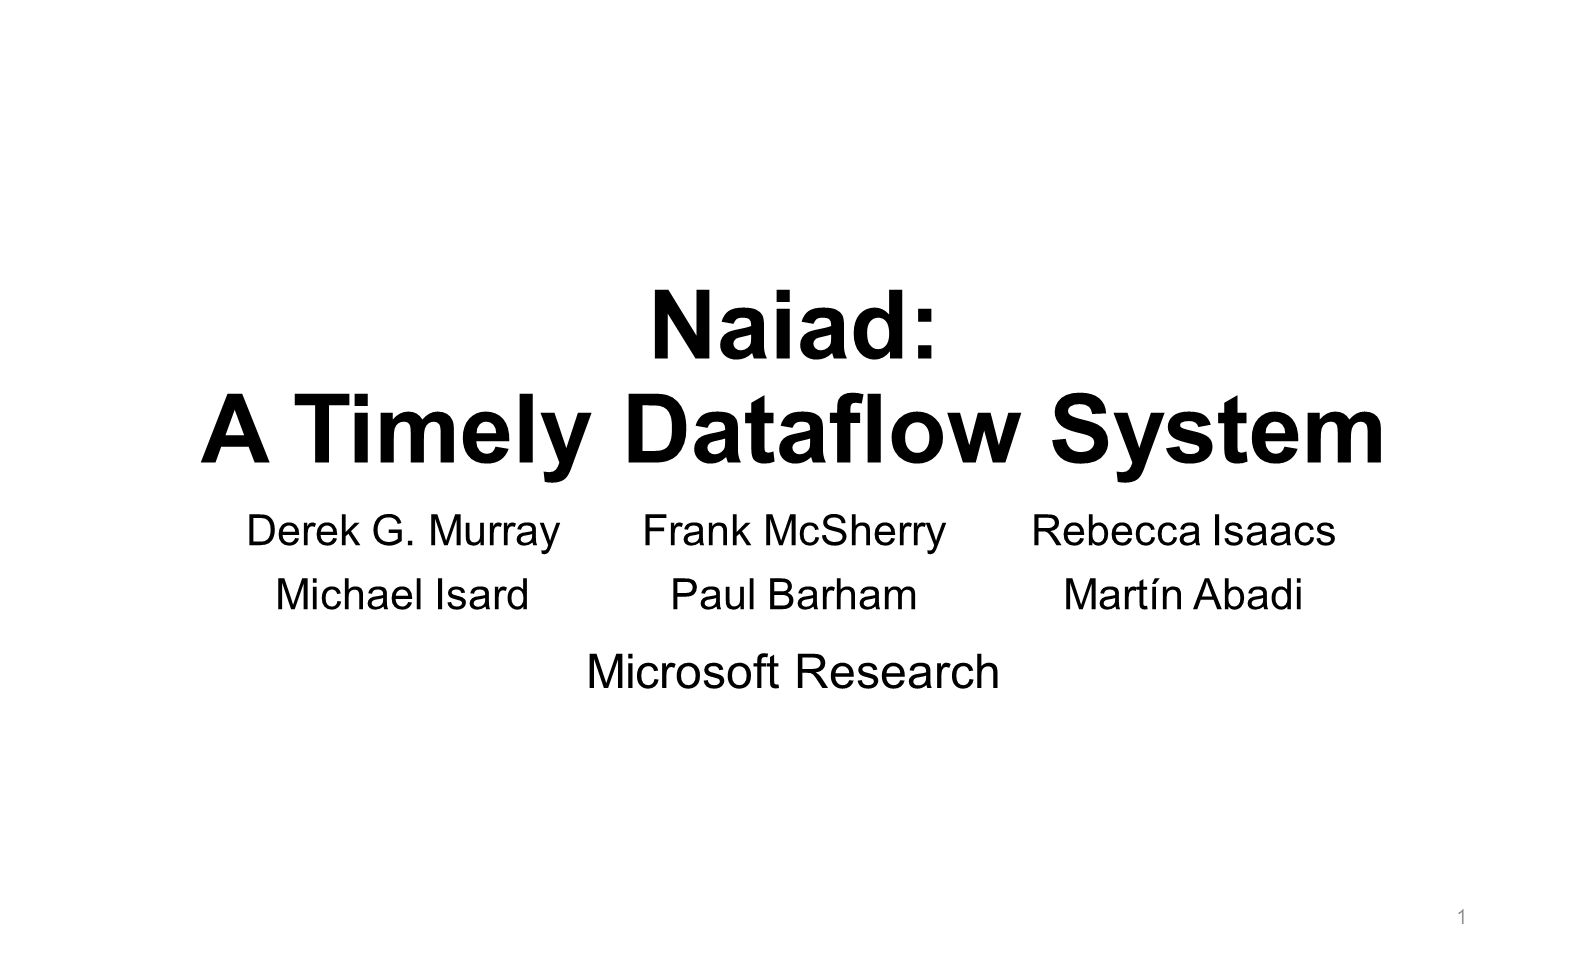 Naiad: A Timely Dataflow System